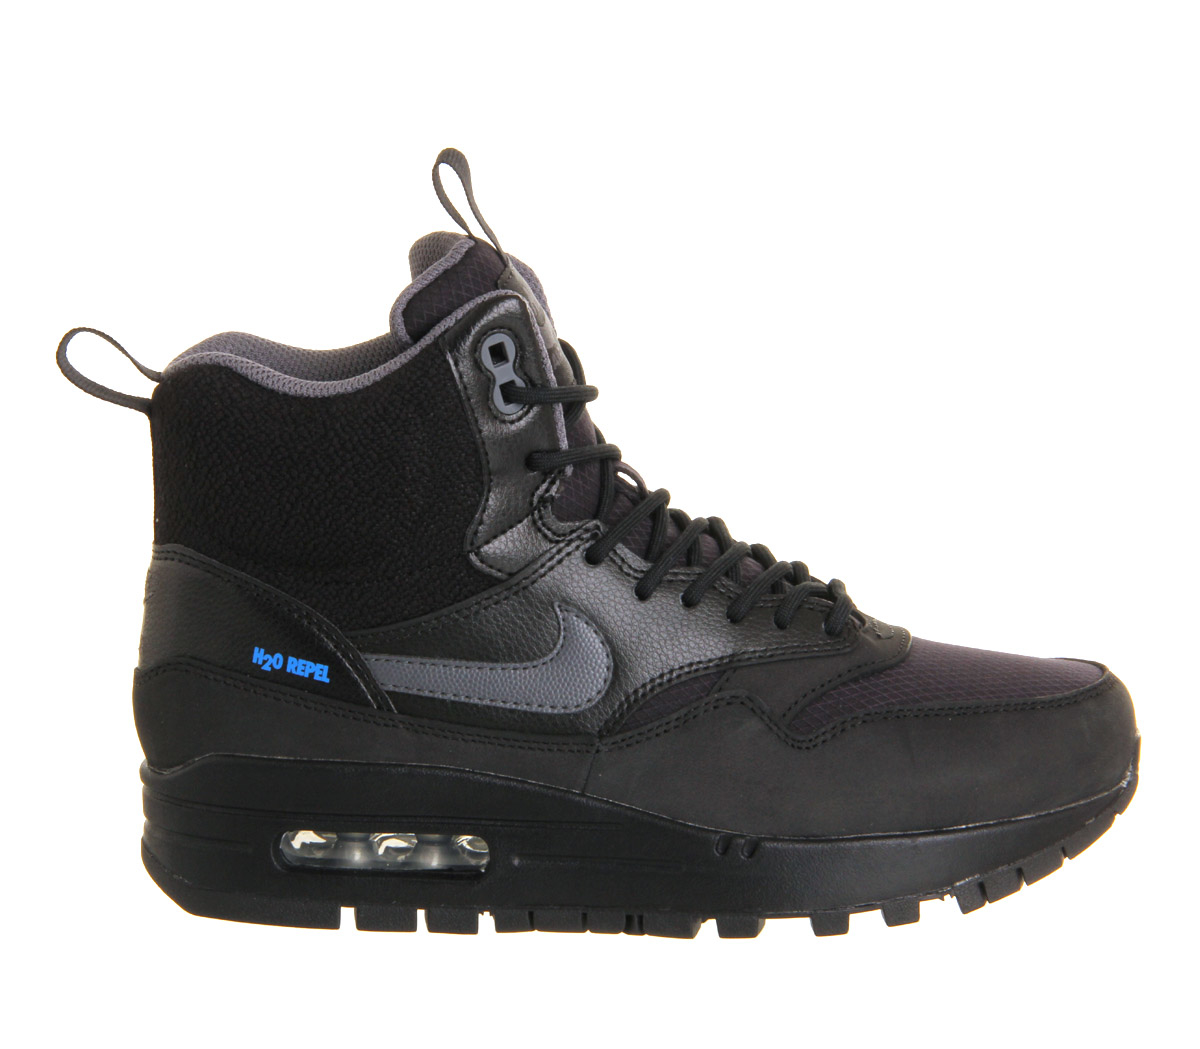 fósil Omitido Descompostura  Nike Air Max 1 Mid Sneakerboots Wmns in Black - Lyst